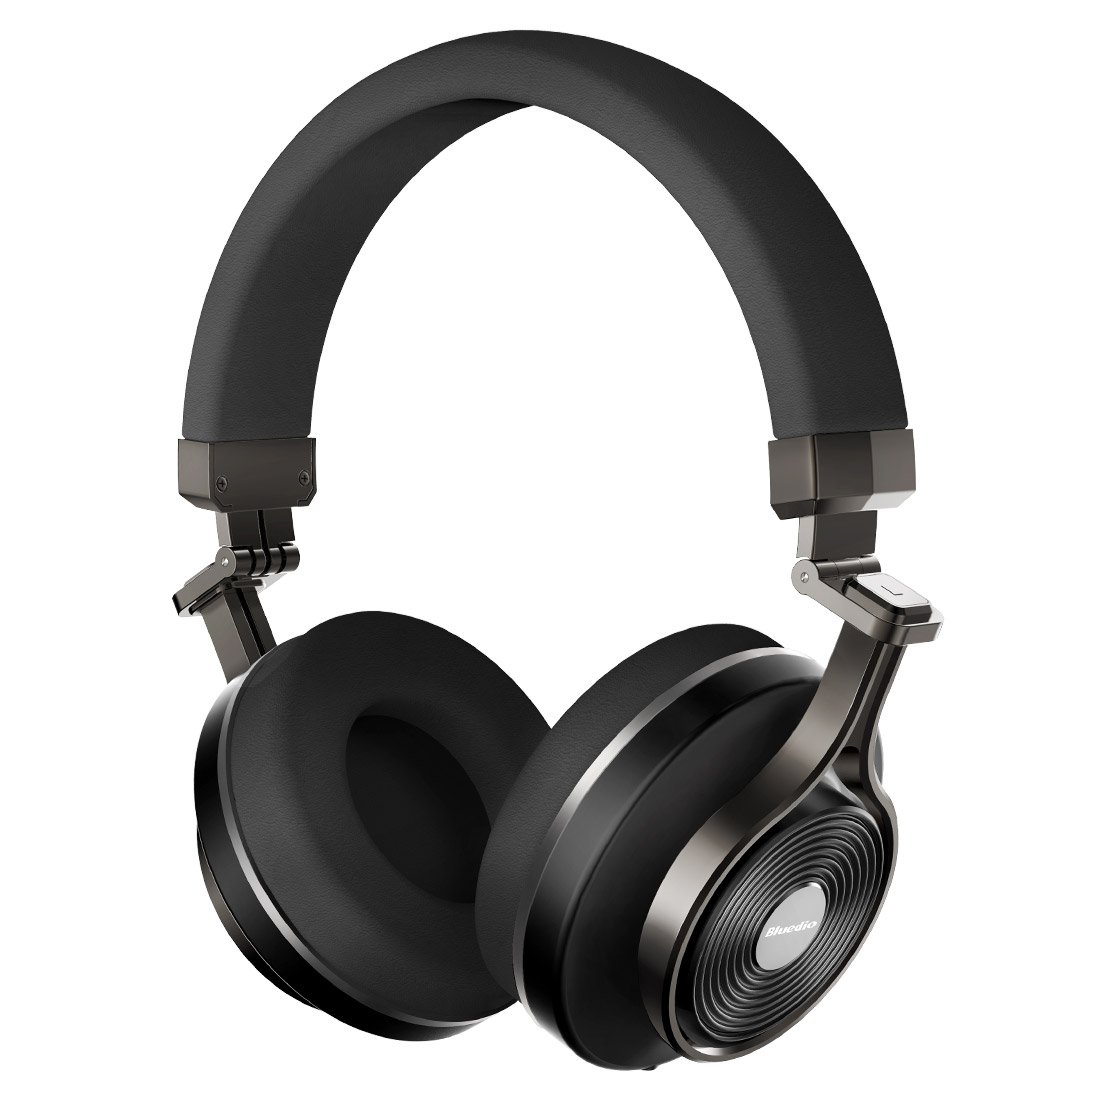 Bluedio T3 Extra Bass Bluetooth Headphones On Ear with Mic, 57mm Driver Folding Wireless Headset, Wired and Wireless Headphones for Cell Phone/TV/ PC Gift (Black)